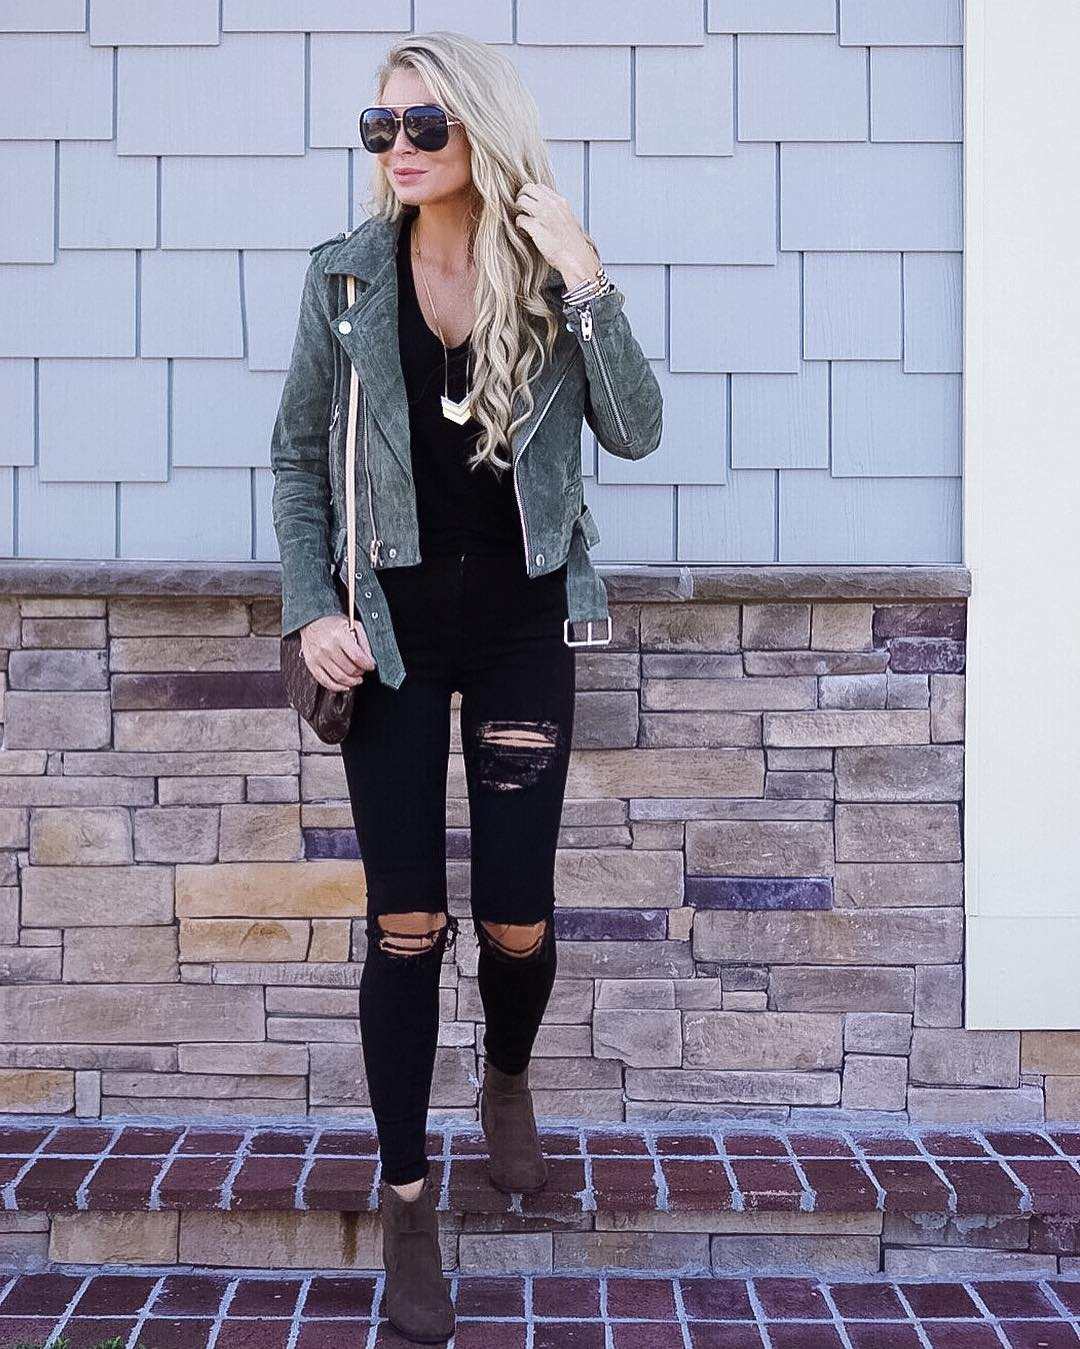 Ready for fall anytime nowww...and can we talk about this moto jacket { totally OBSESSED } it's selling out fast so grab one while ya can! http://liketk.it/2p9Qr #liketkit #readyforfall #happysunday #ootd #wiw #fallfashion